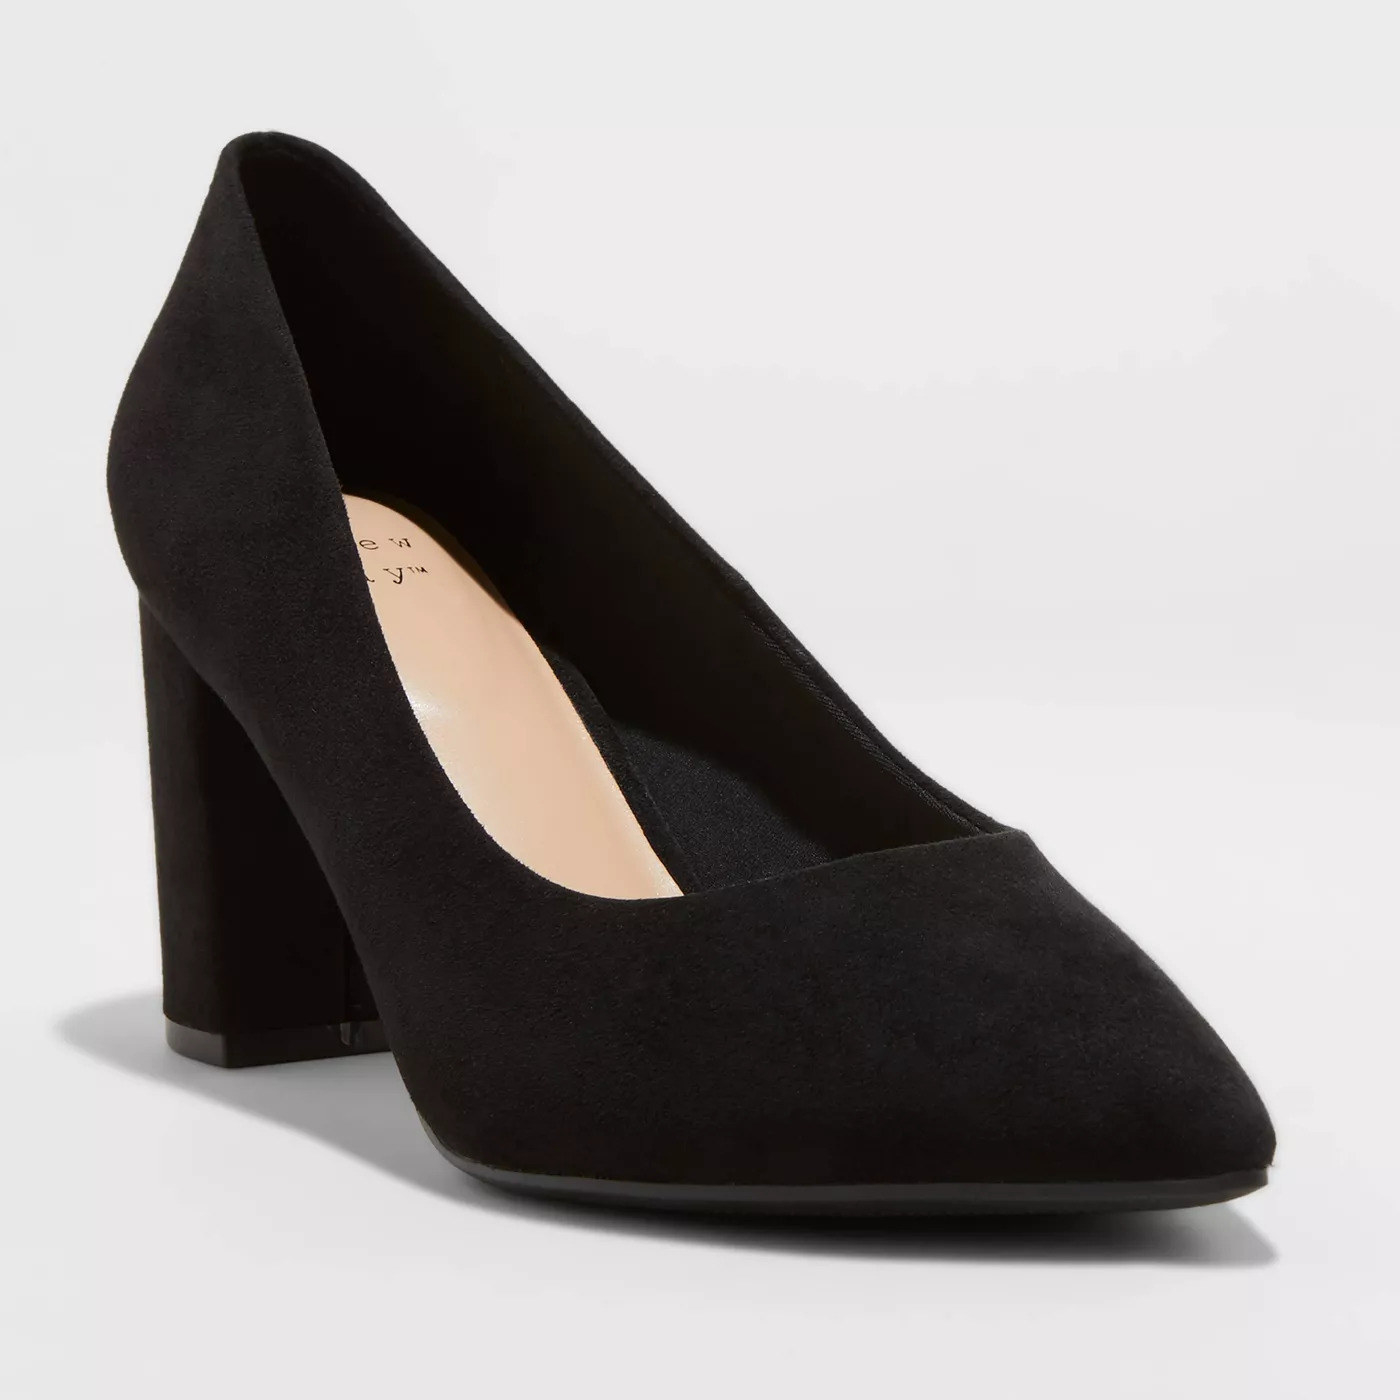 black suede pointed-toe pump with a mid-height block heel